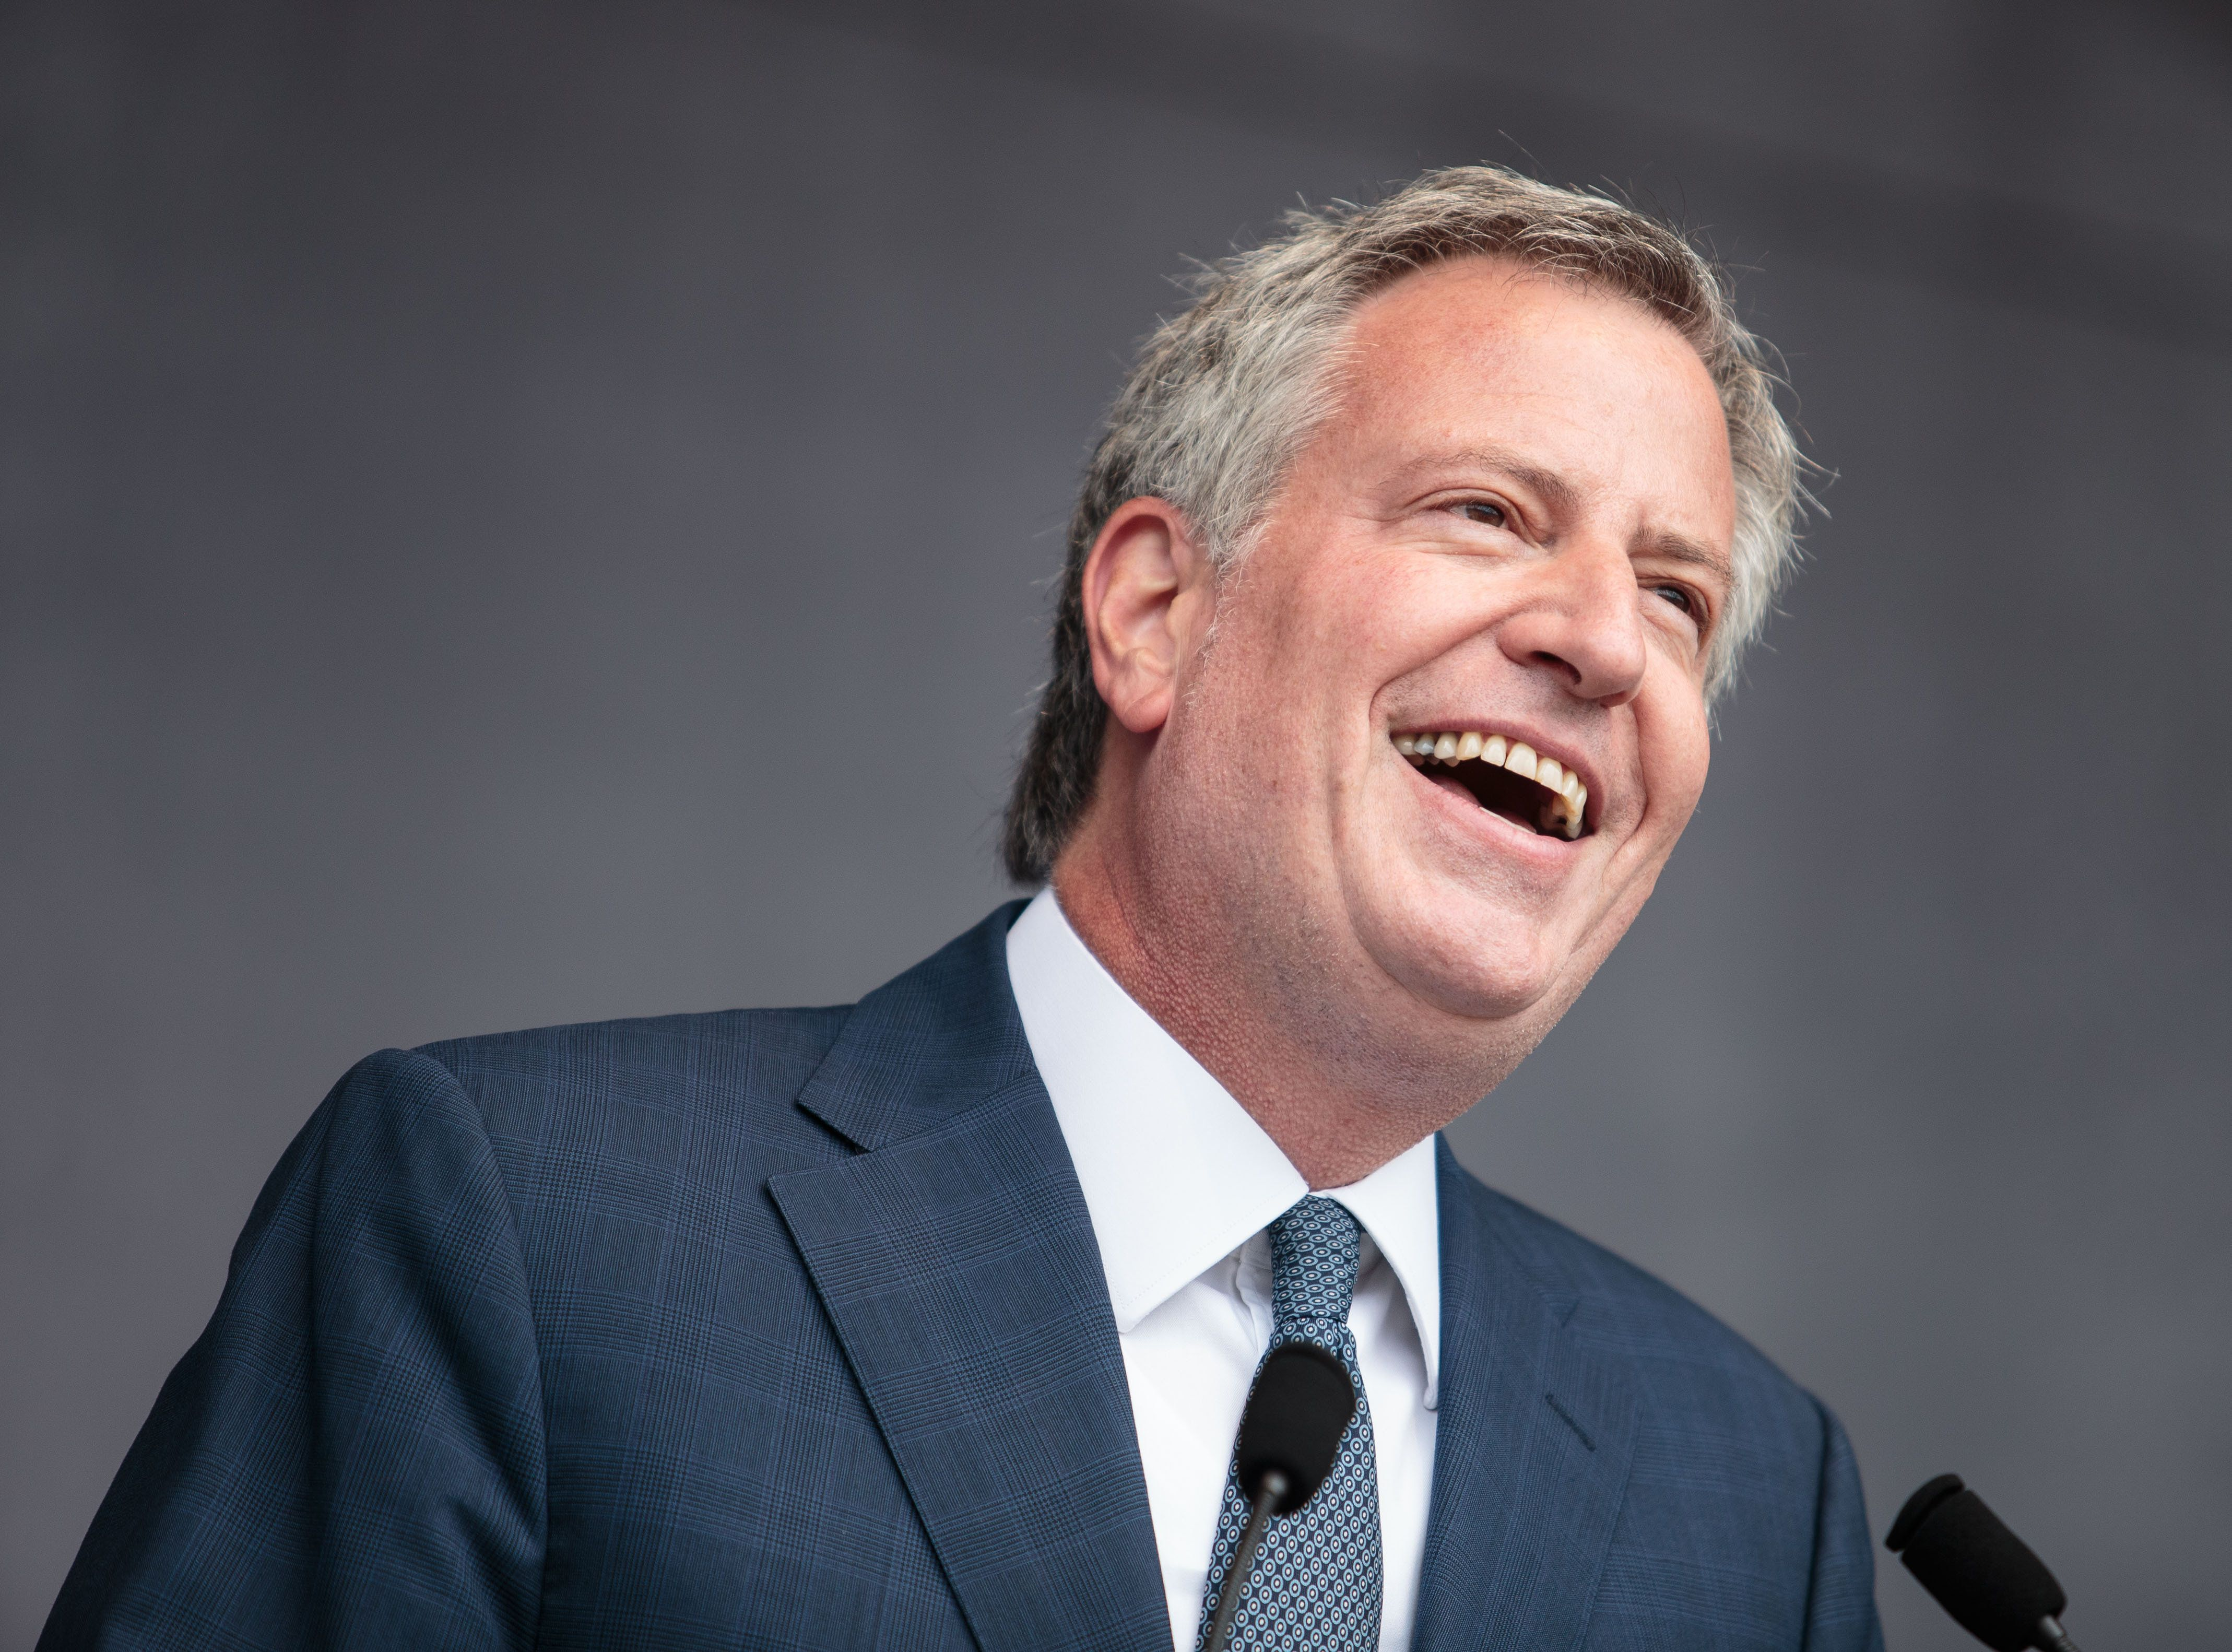 New York Mayor Bill de Blasio speaks during the 'Hamburg zeigt Haltung' (Hamburg shows dignity) gathering on July 8, 2017 in Hamburg, northern Germany as world leaders meet during the G20 summit. Raging street battles that marred Germany's G20 summit have sparked a political fight over how Hamburg could descend into 'mob rule' and why Chancellor Angela Merkel chose a hotbed of leftist militancy as the venue. / AFP PHOTO / dpa / Sina Schuldt / Germany OUT        (Photo credit should read SINA SCHULDT/AFP/Getty Images)